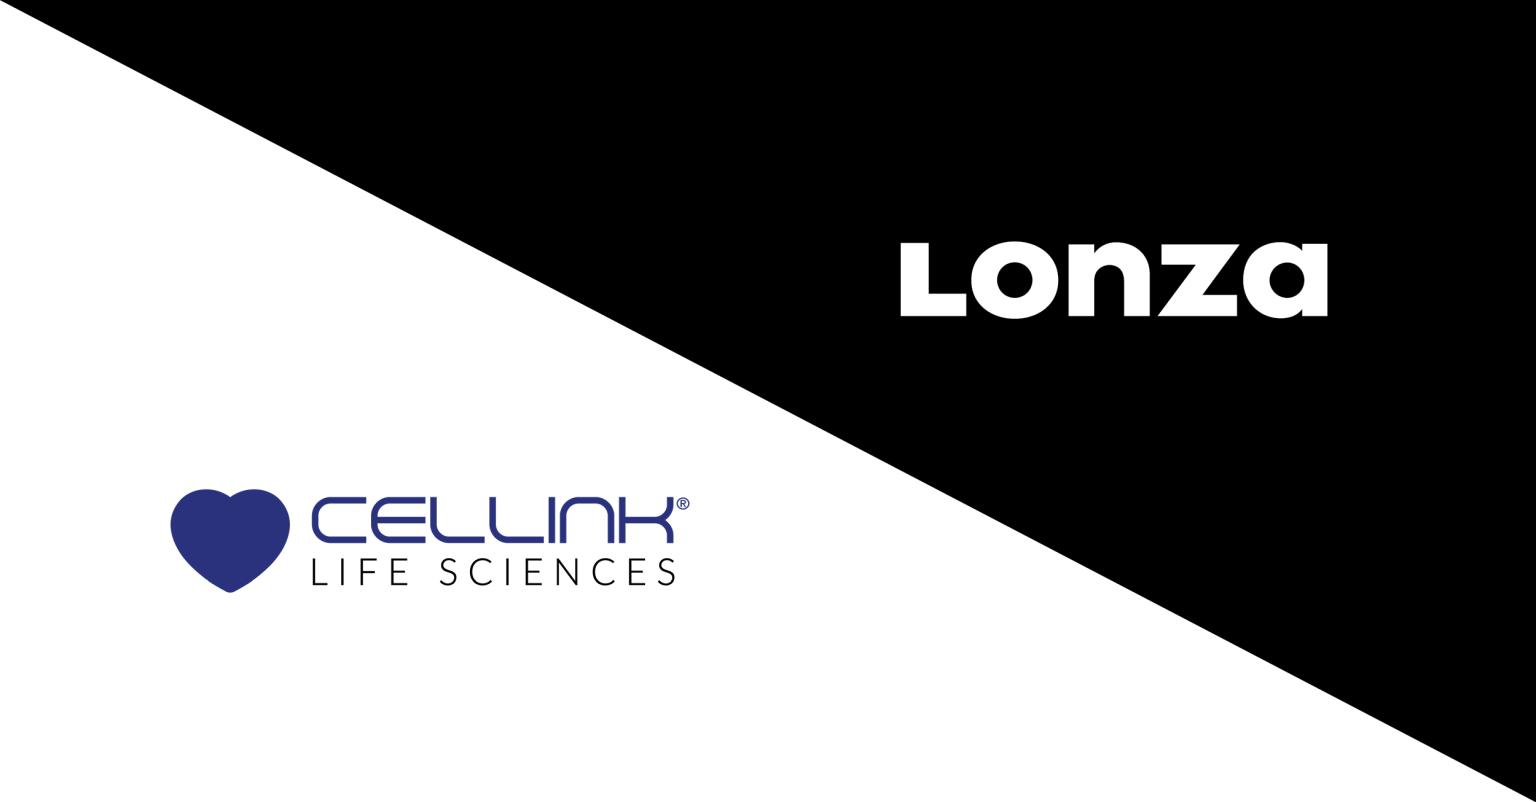 Cellink Groups with Lonza to Advance Bioprinting Cell Cultures